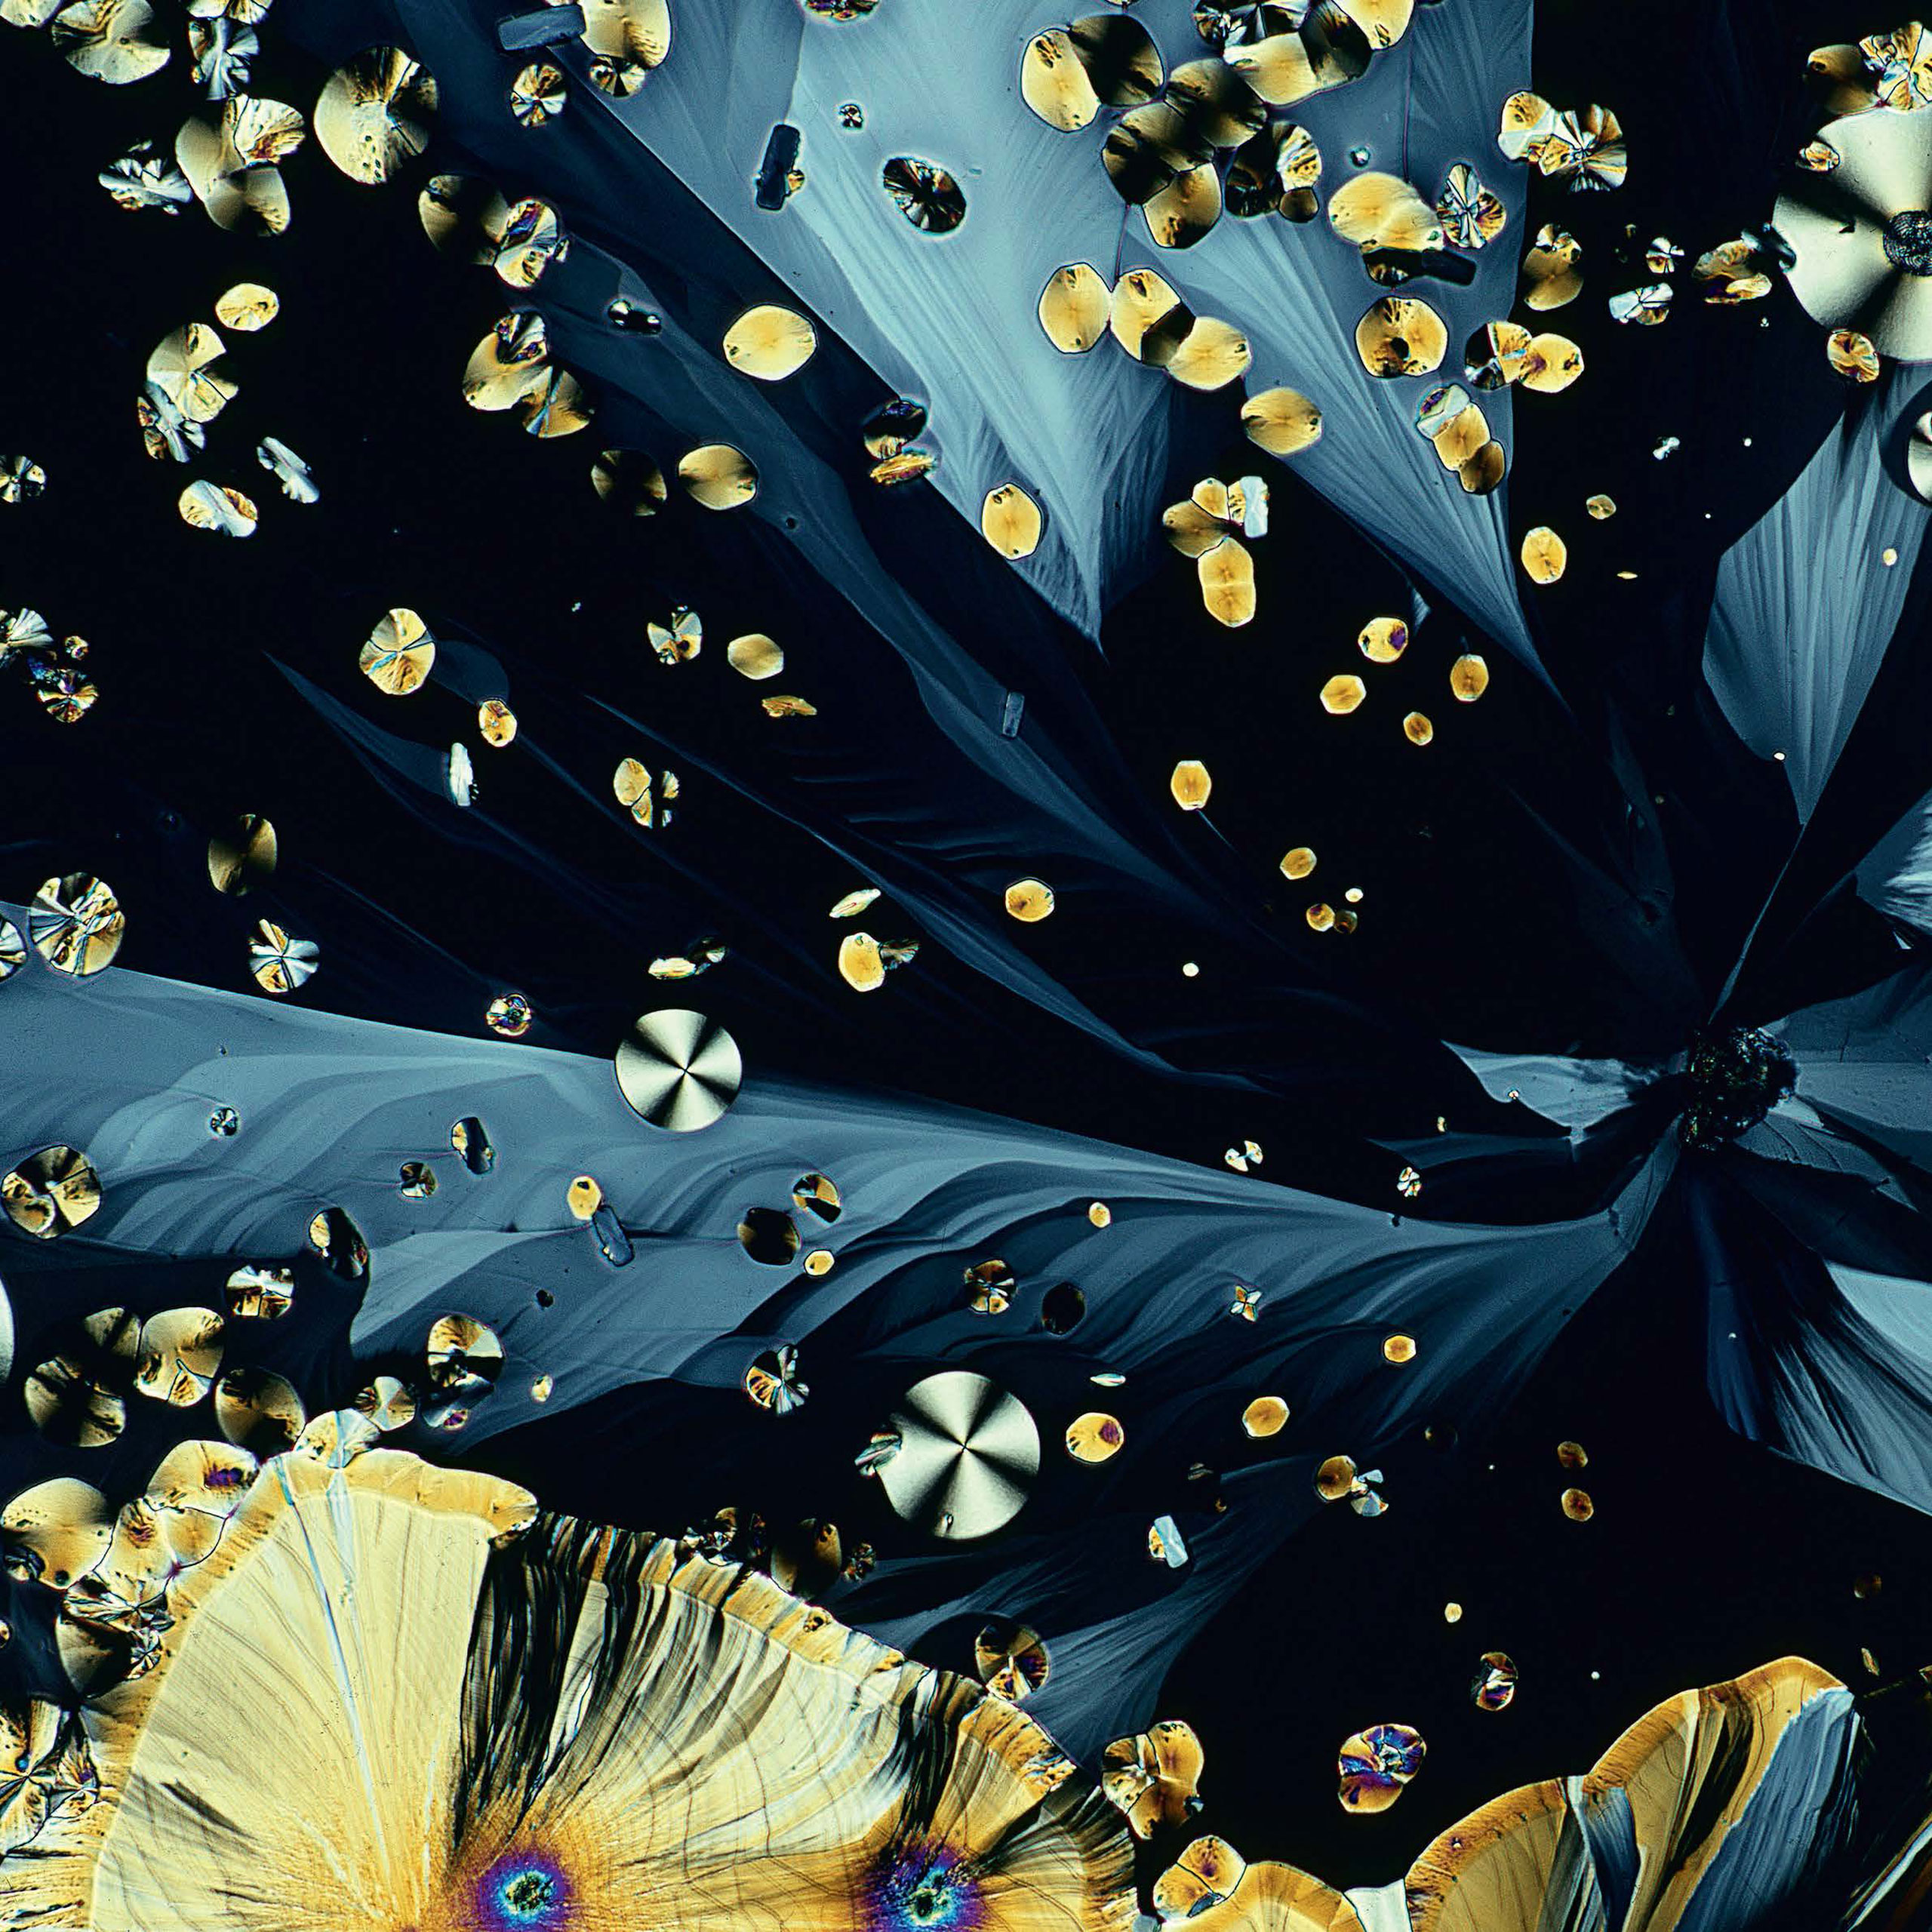 <b>Melatonin crystals</b> (polarized light micrograph)